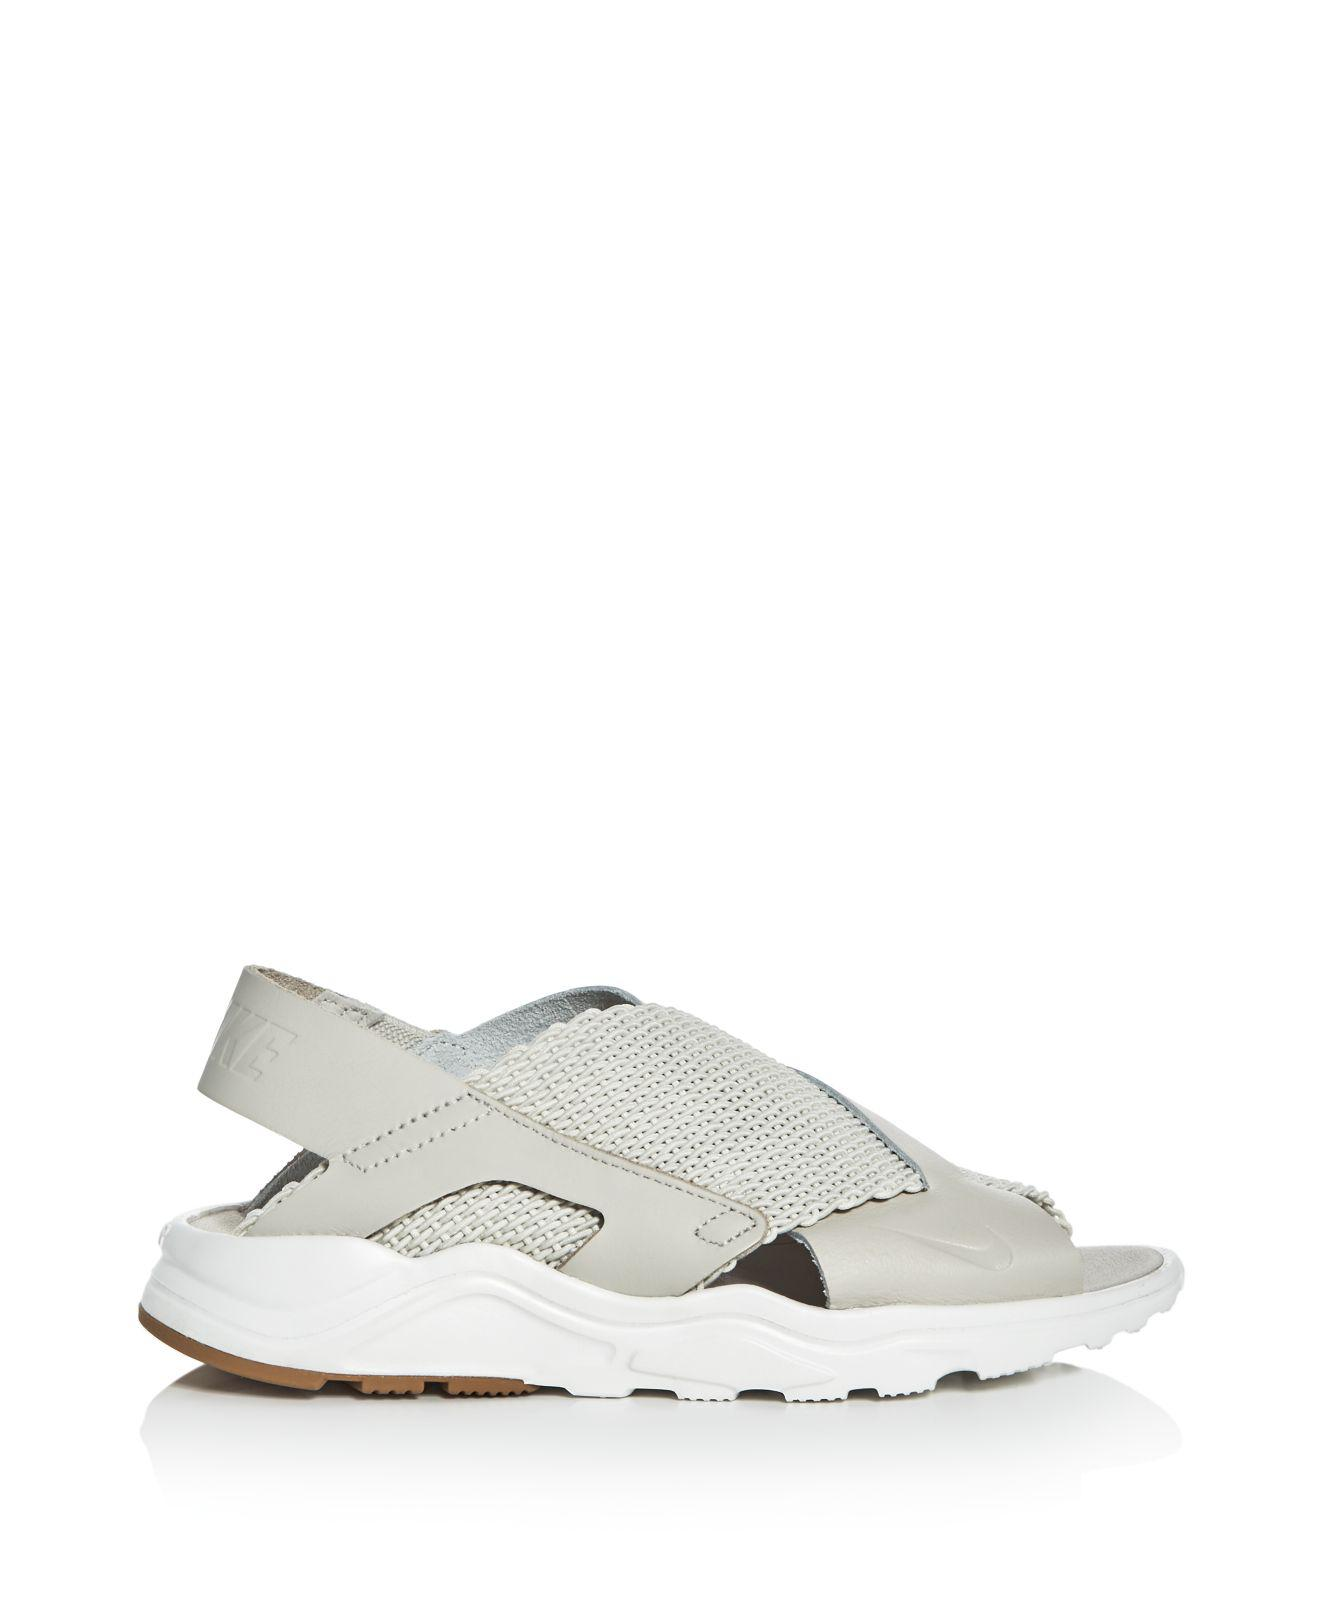 5a2f3fde3130 Gallery. Previously sold at  Bloomingdale s · Women s Nike Air Huarache ...